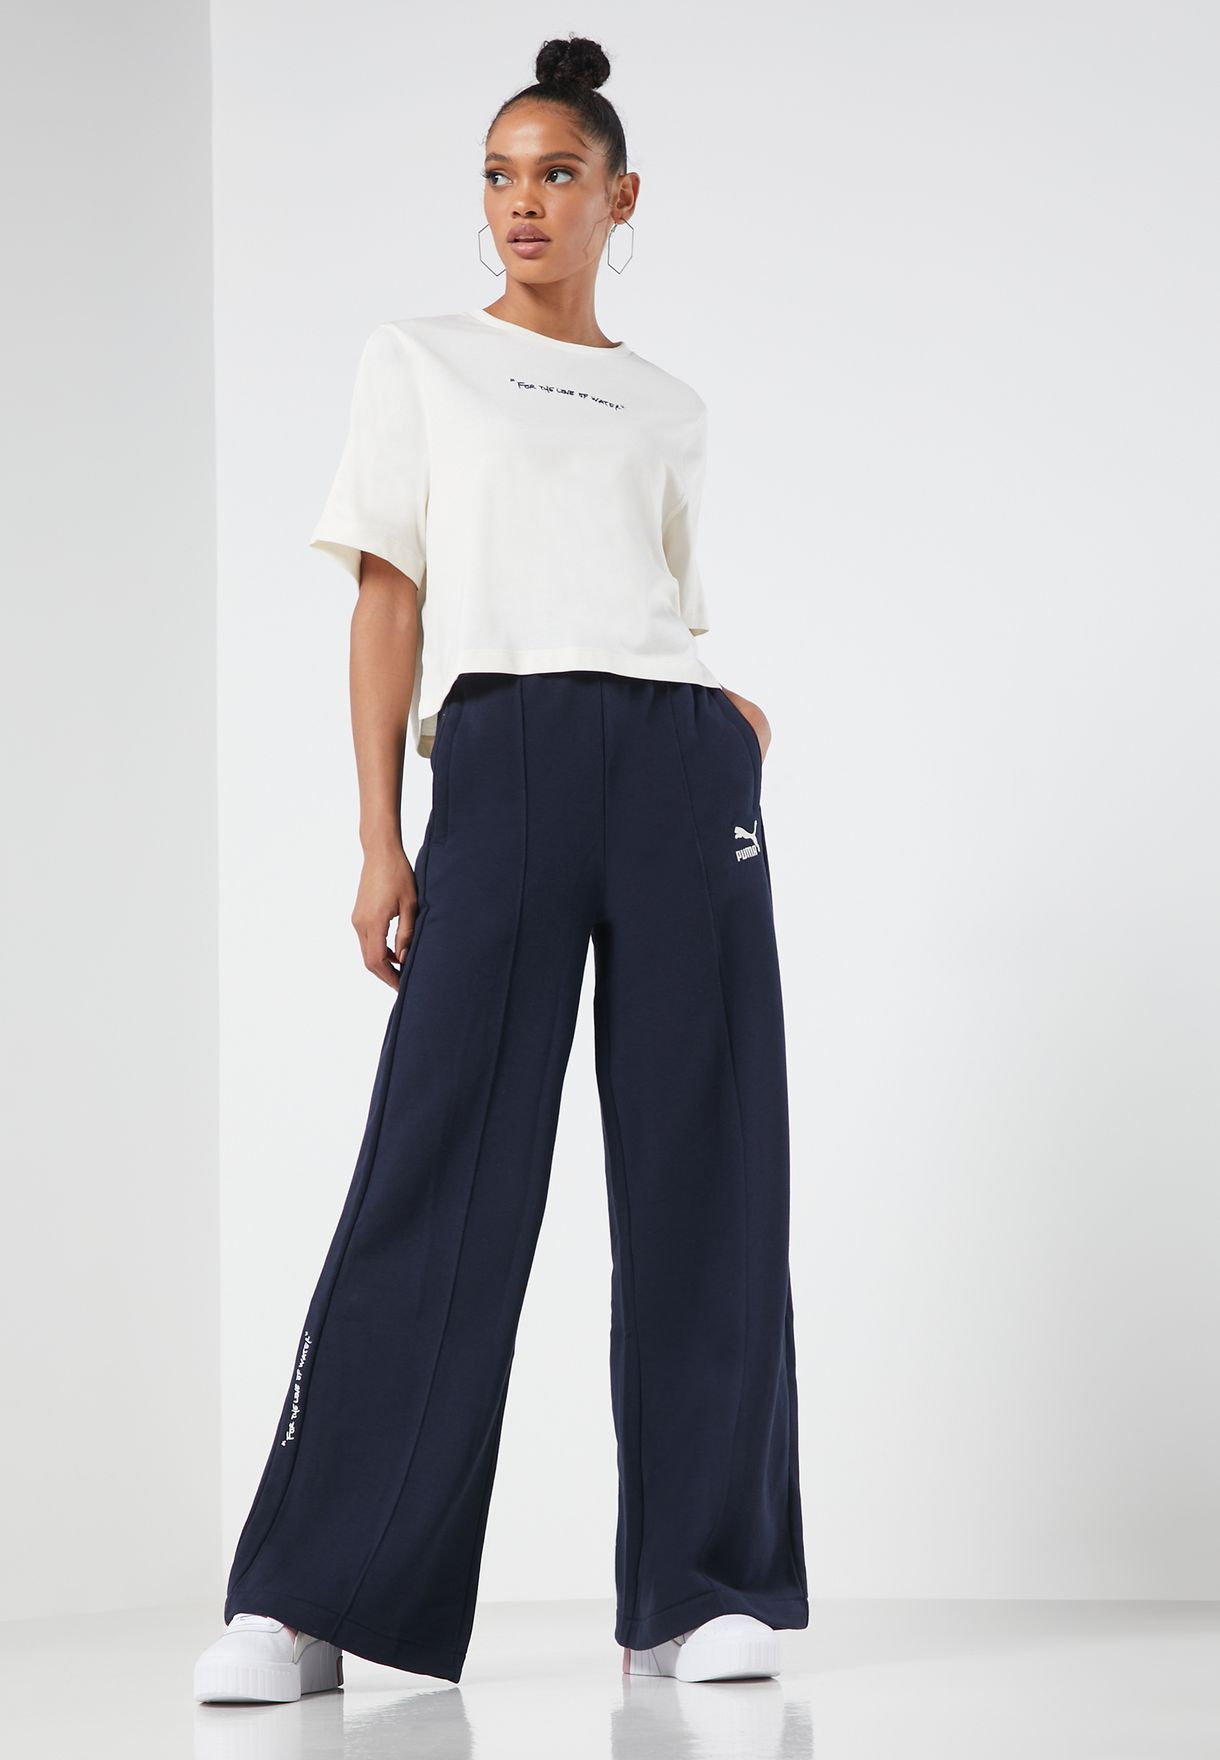 CSM High Waist Sweatpants